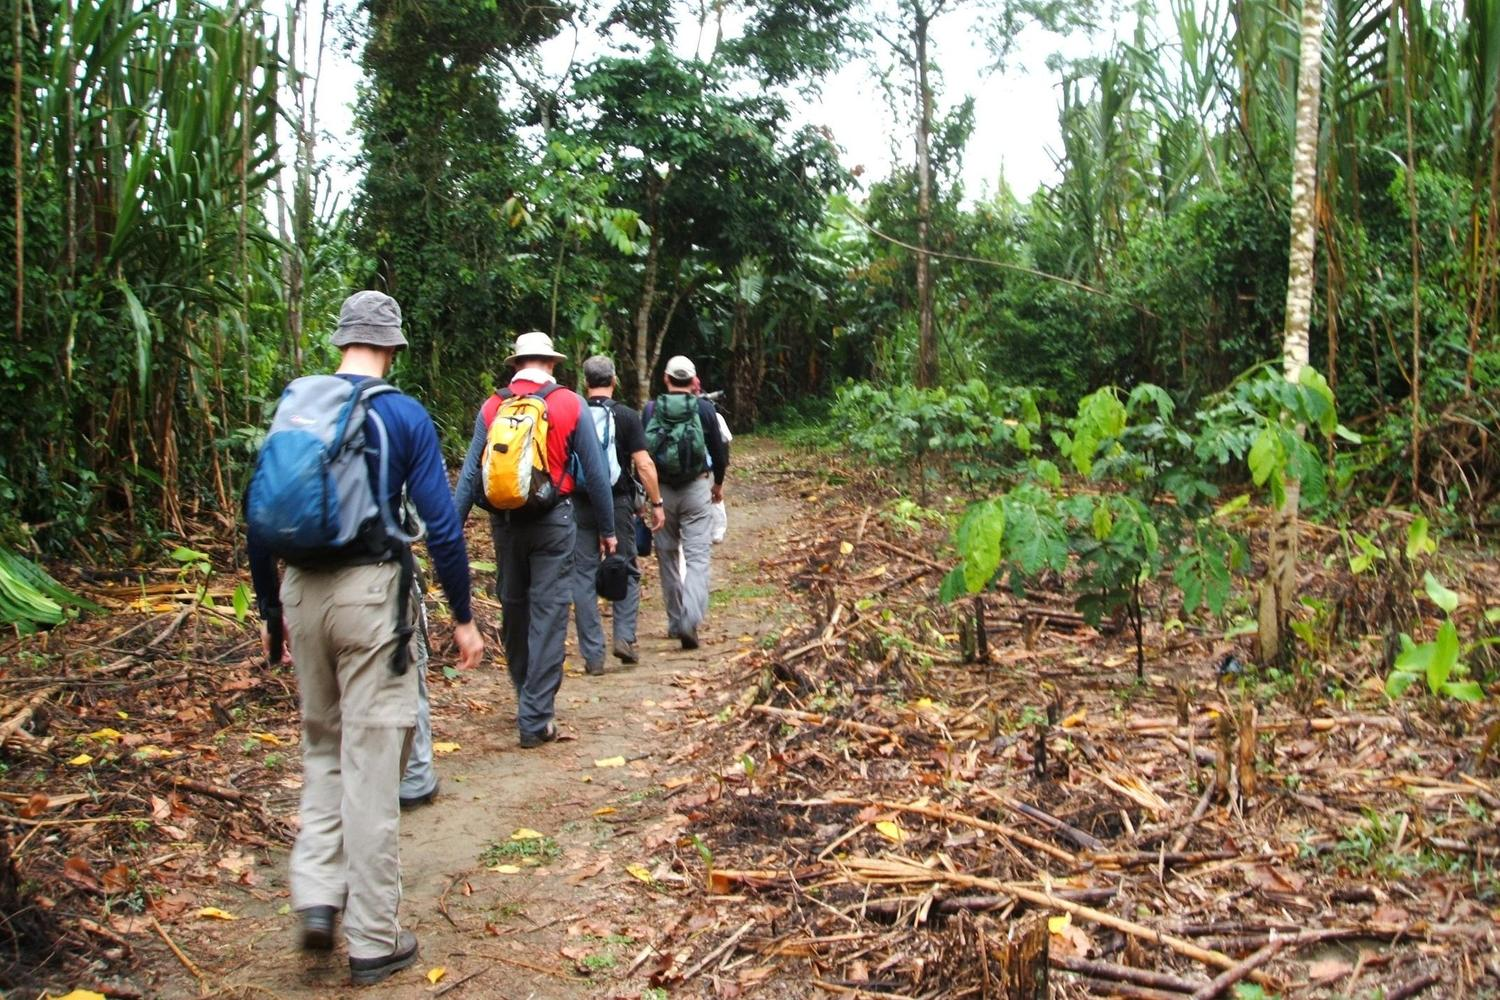 Walking to see wildlife in the Peruvian Amazon